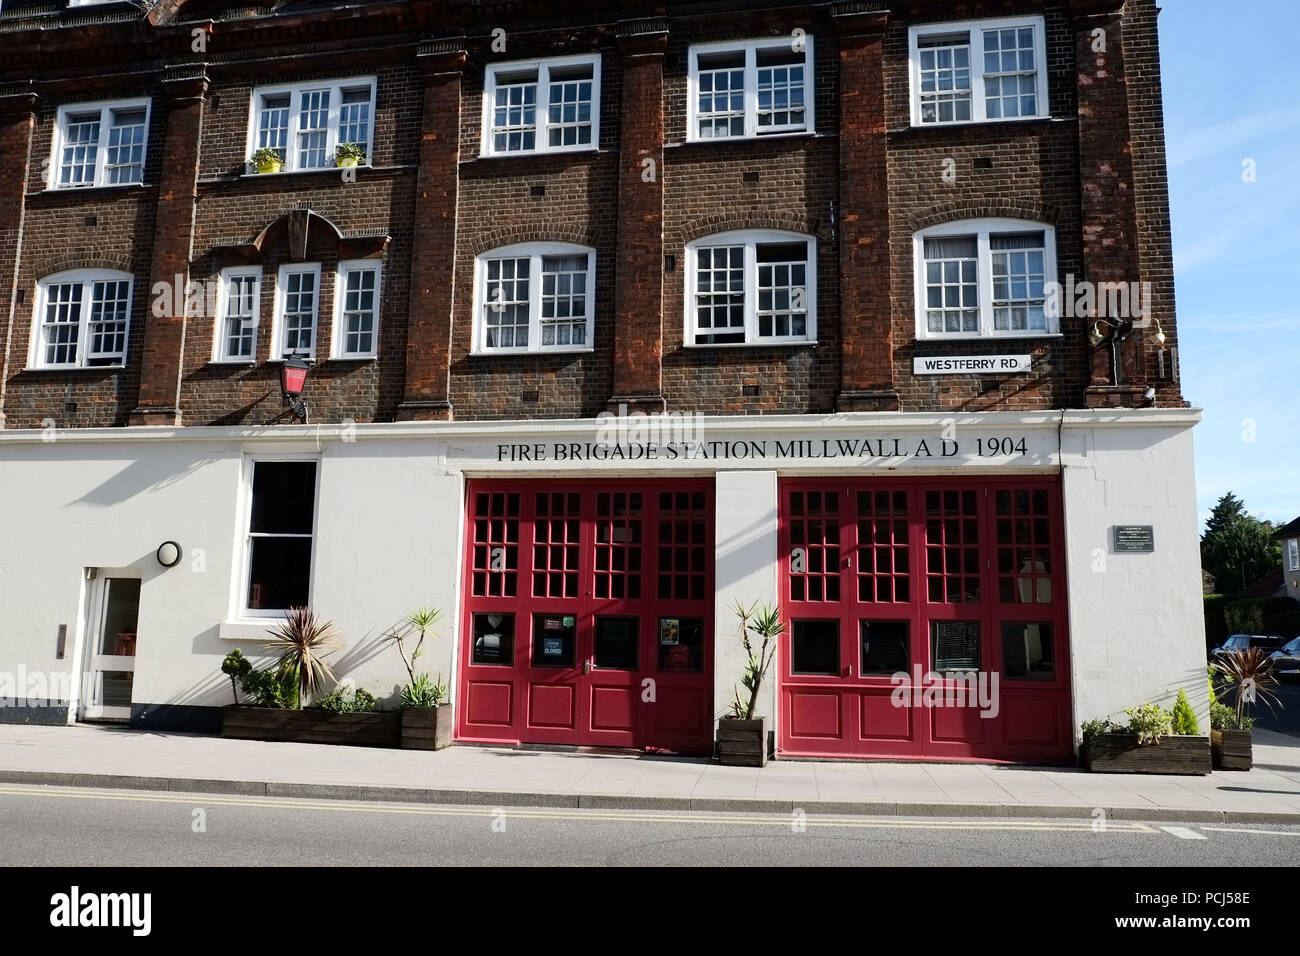 Millwall Old Fire Staion Westferry Road Isle of Dogs London UK - Stock Image